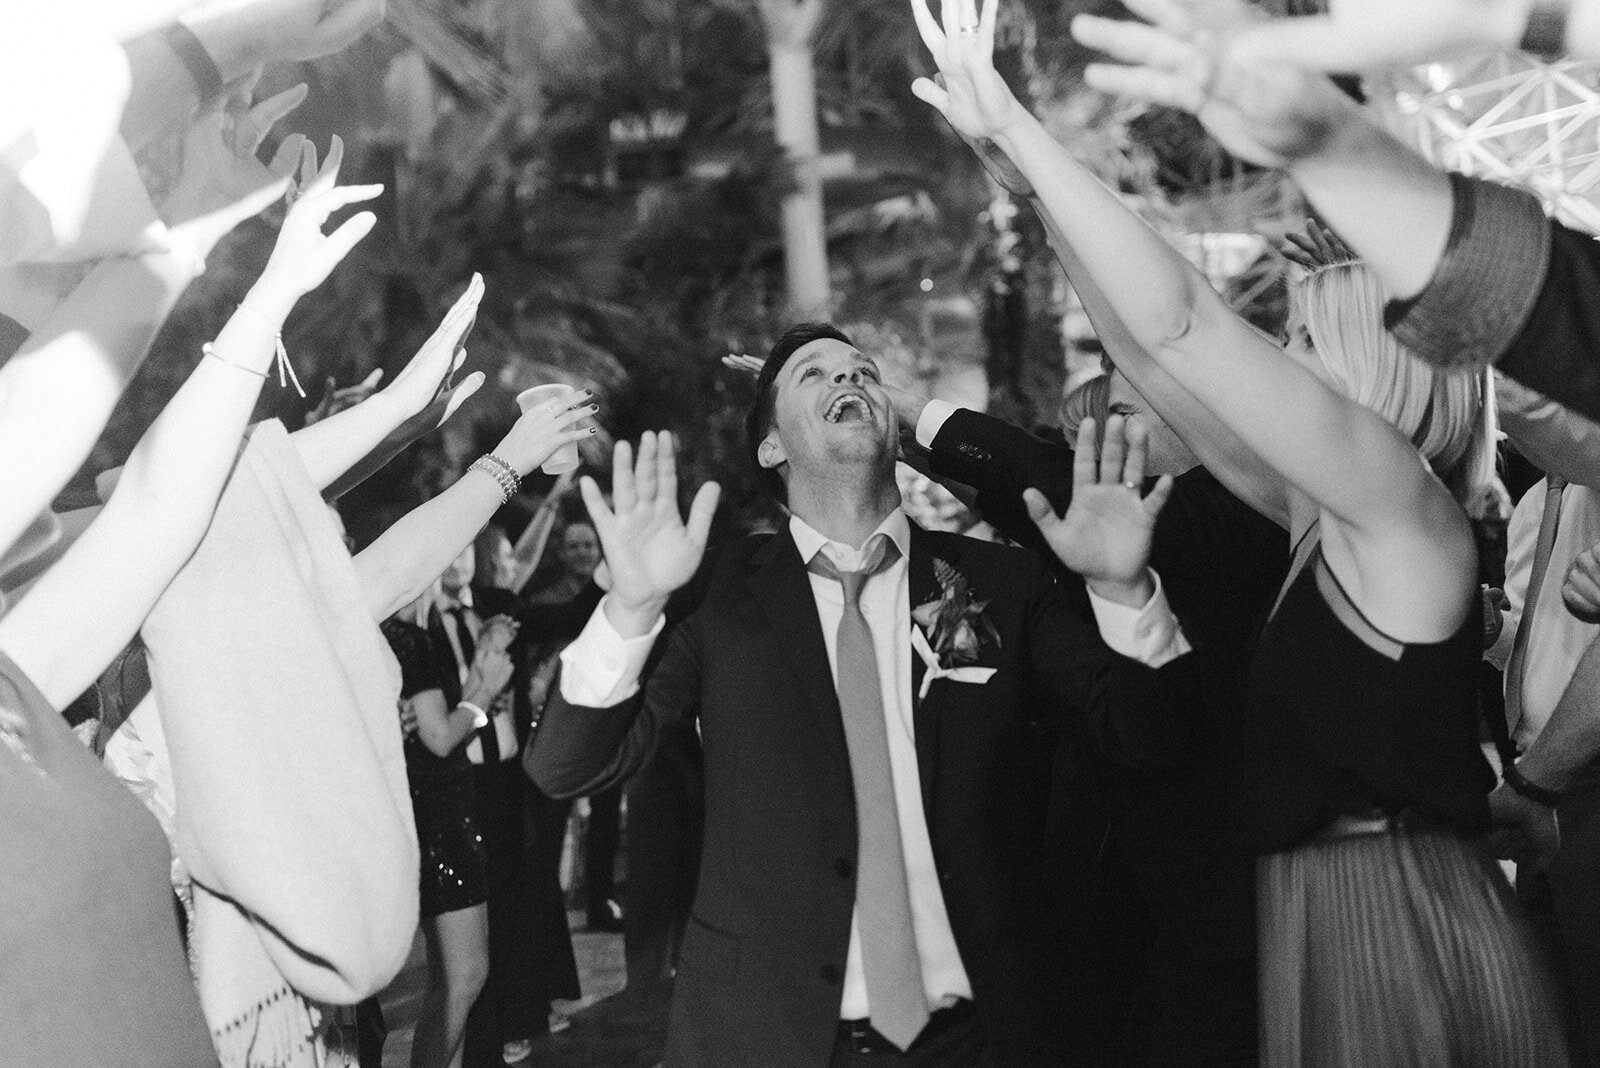 Groom dances with guests at his wedding reception